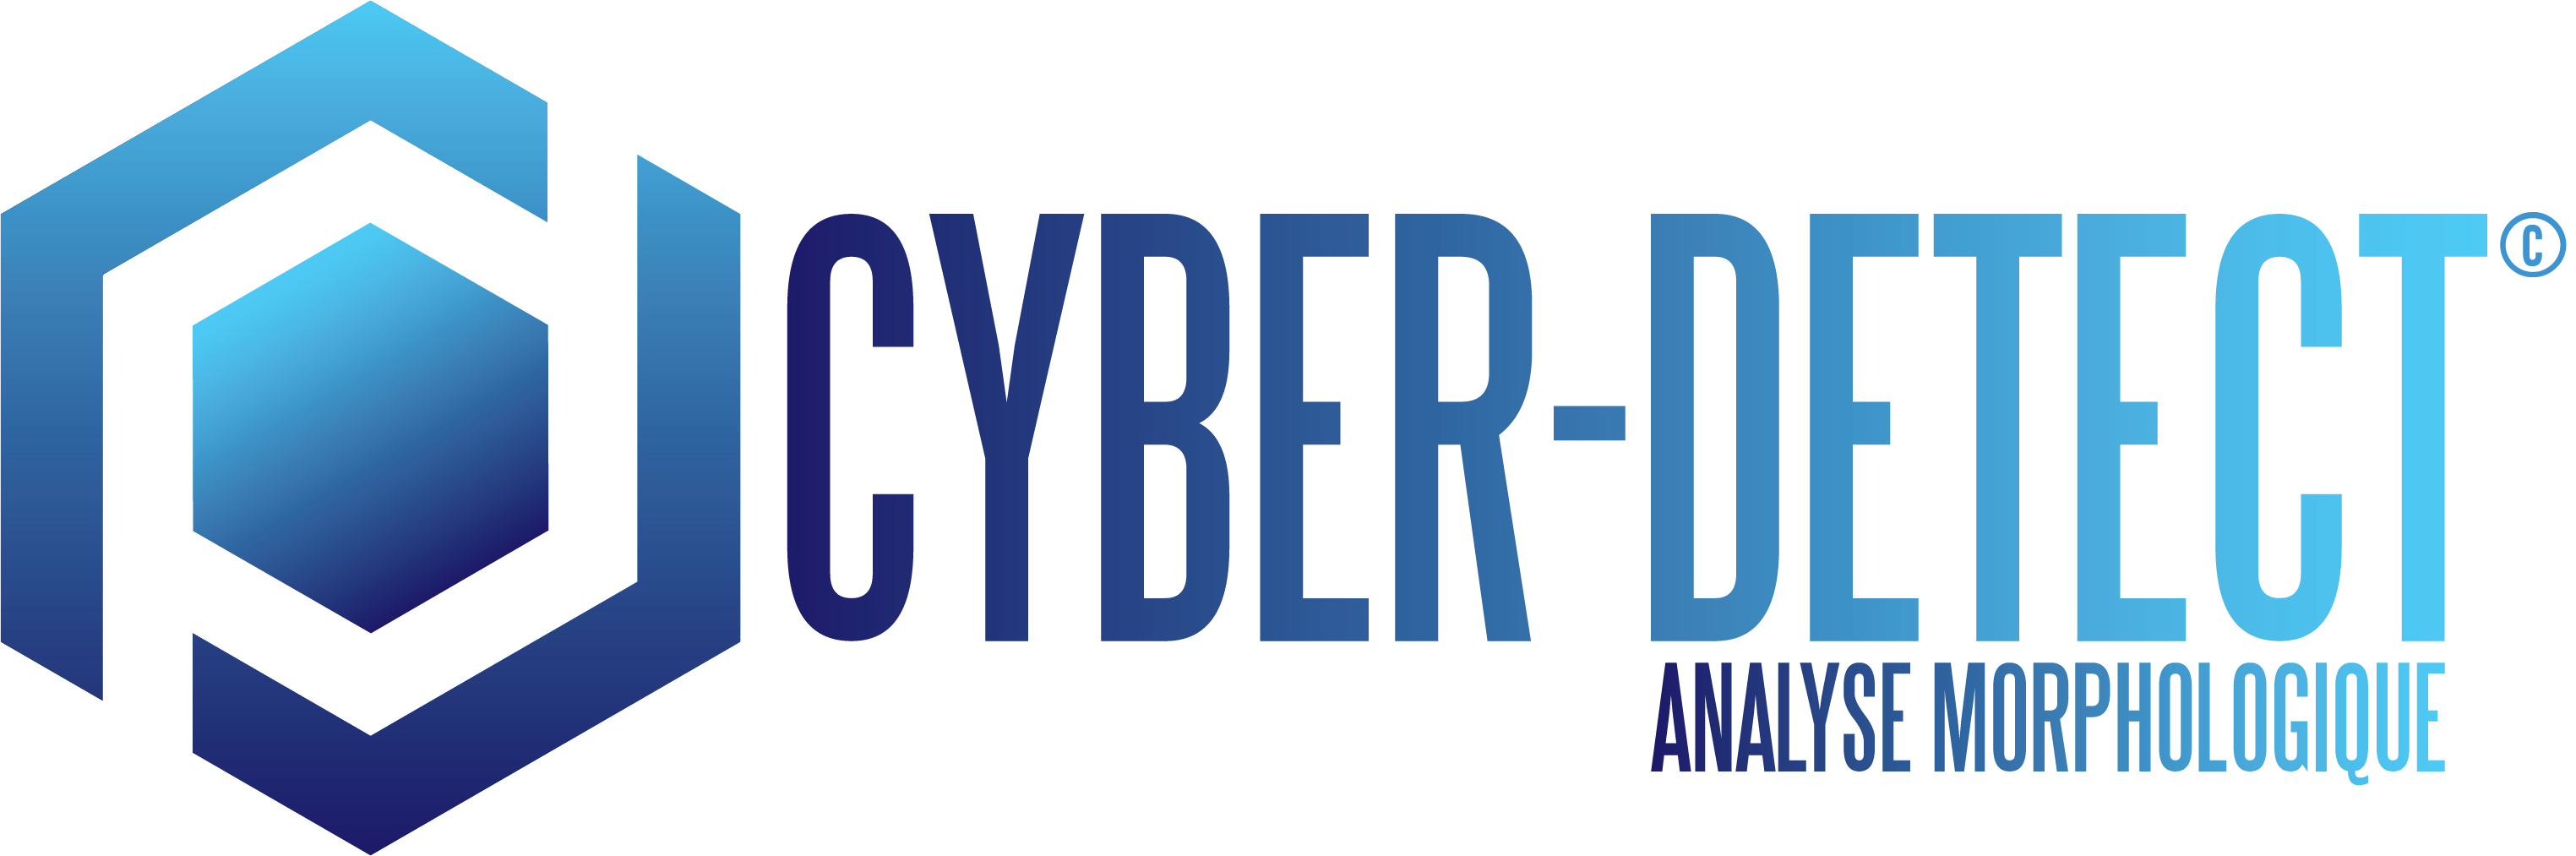 Cyber Detect